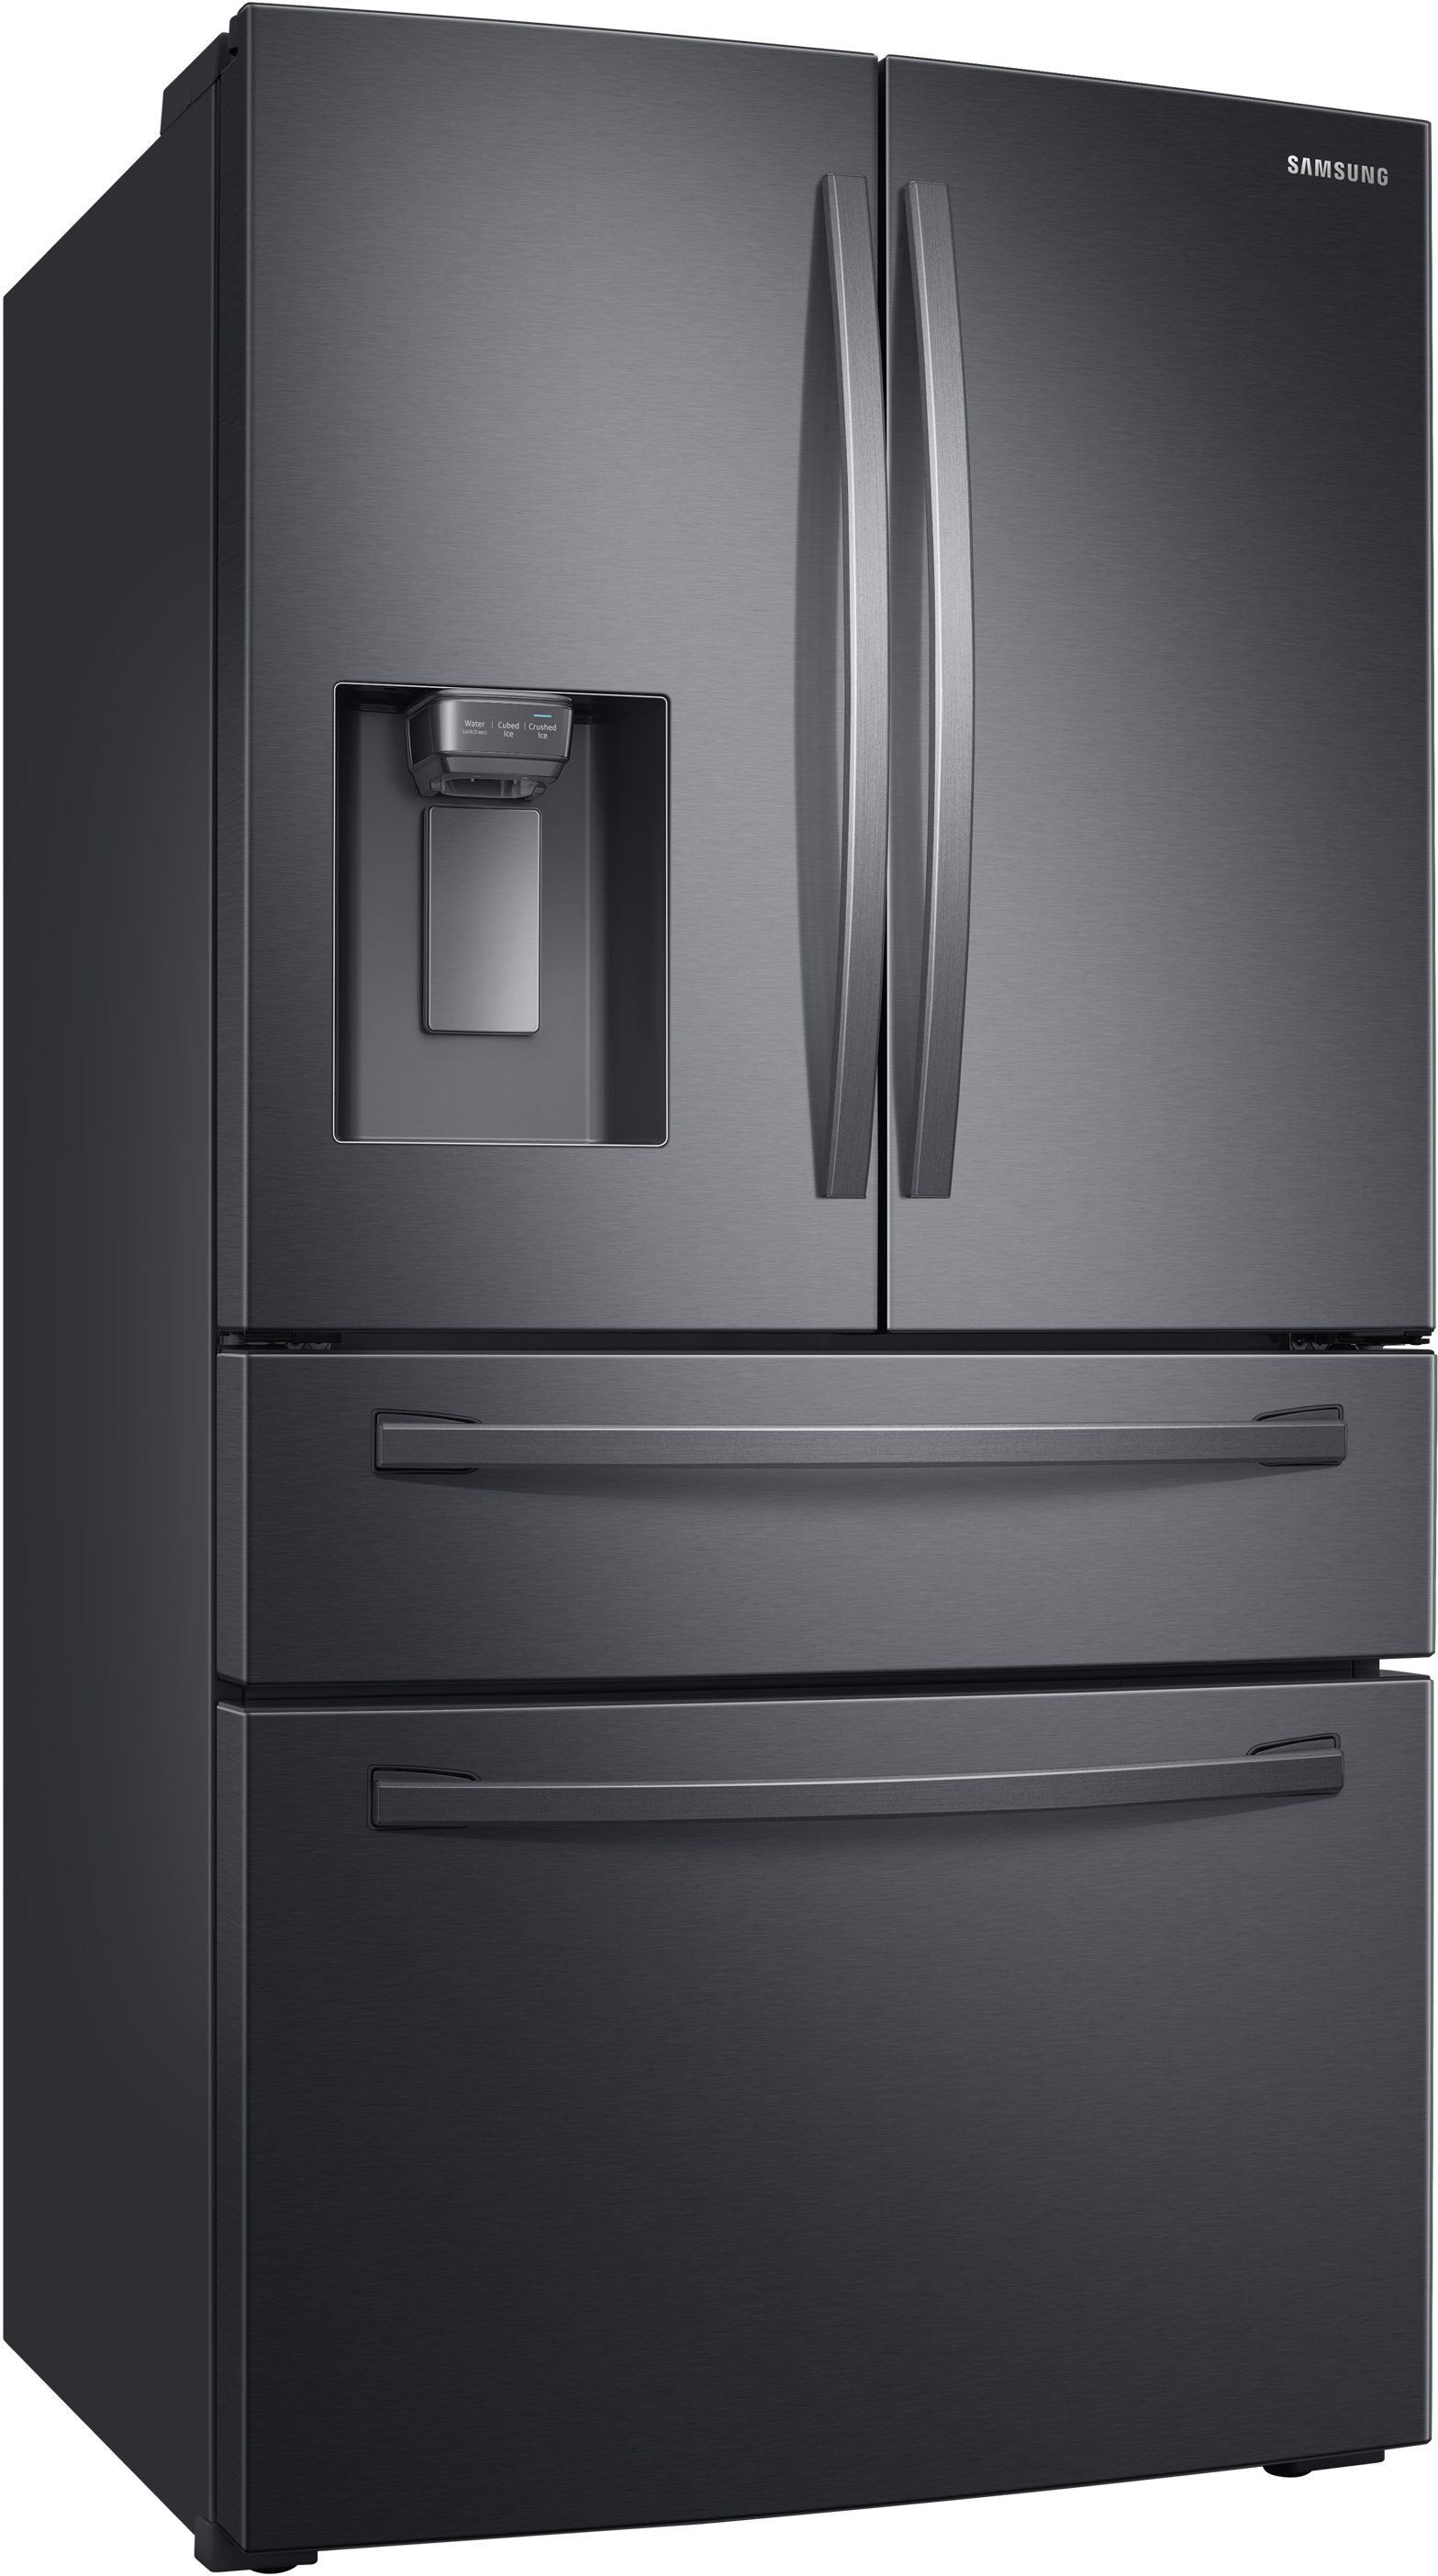 Samsung 22 6 Cu Ft Fingerprint Resistant Black Stainless